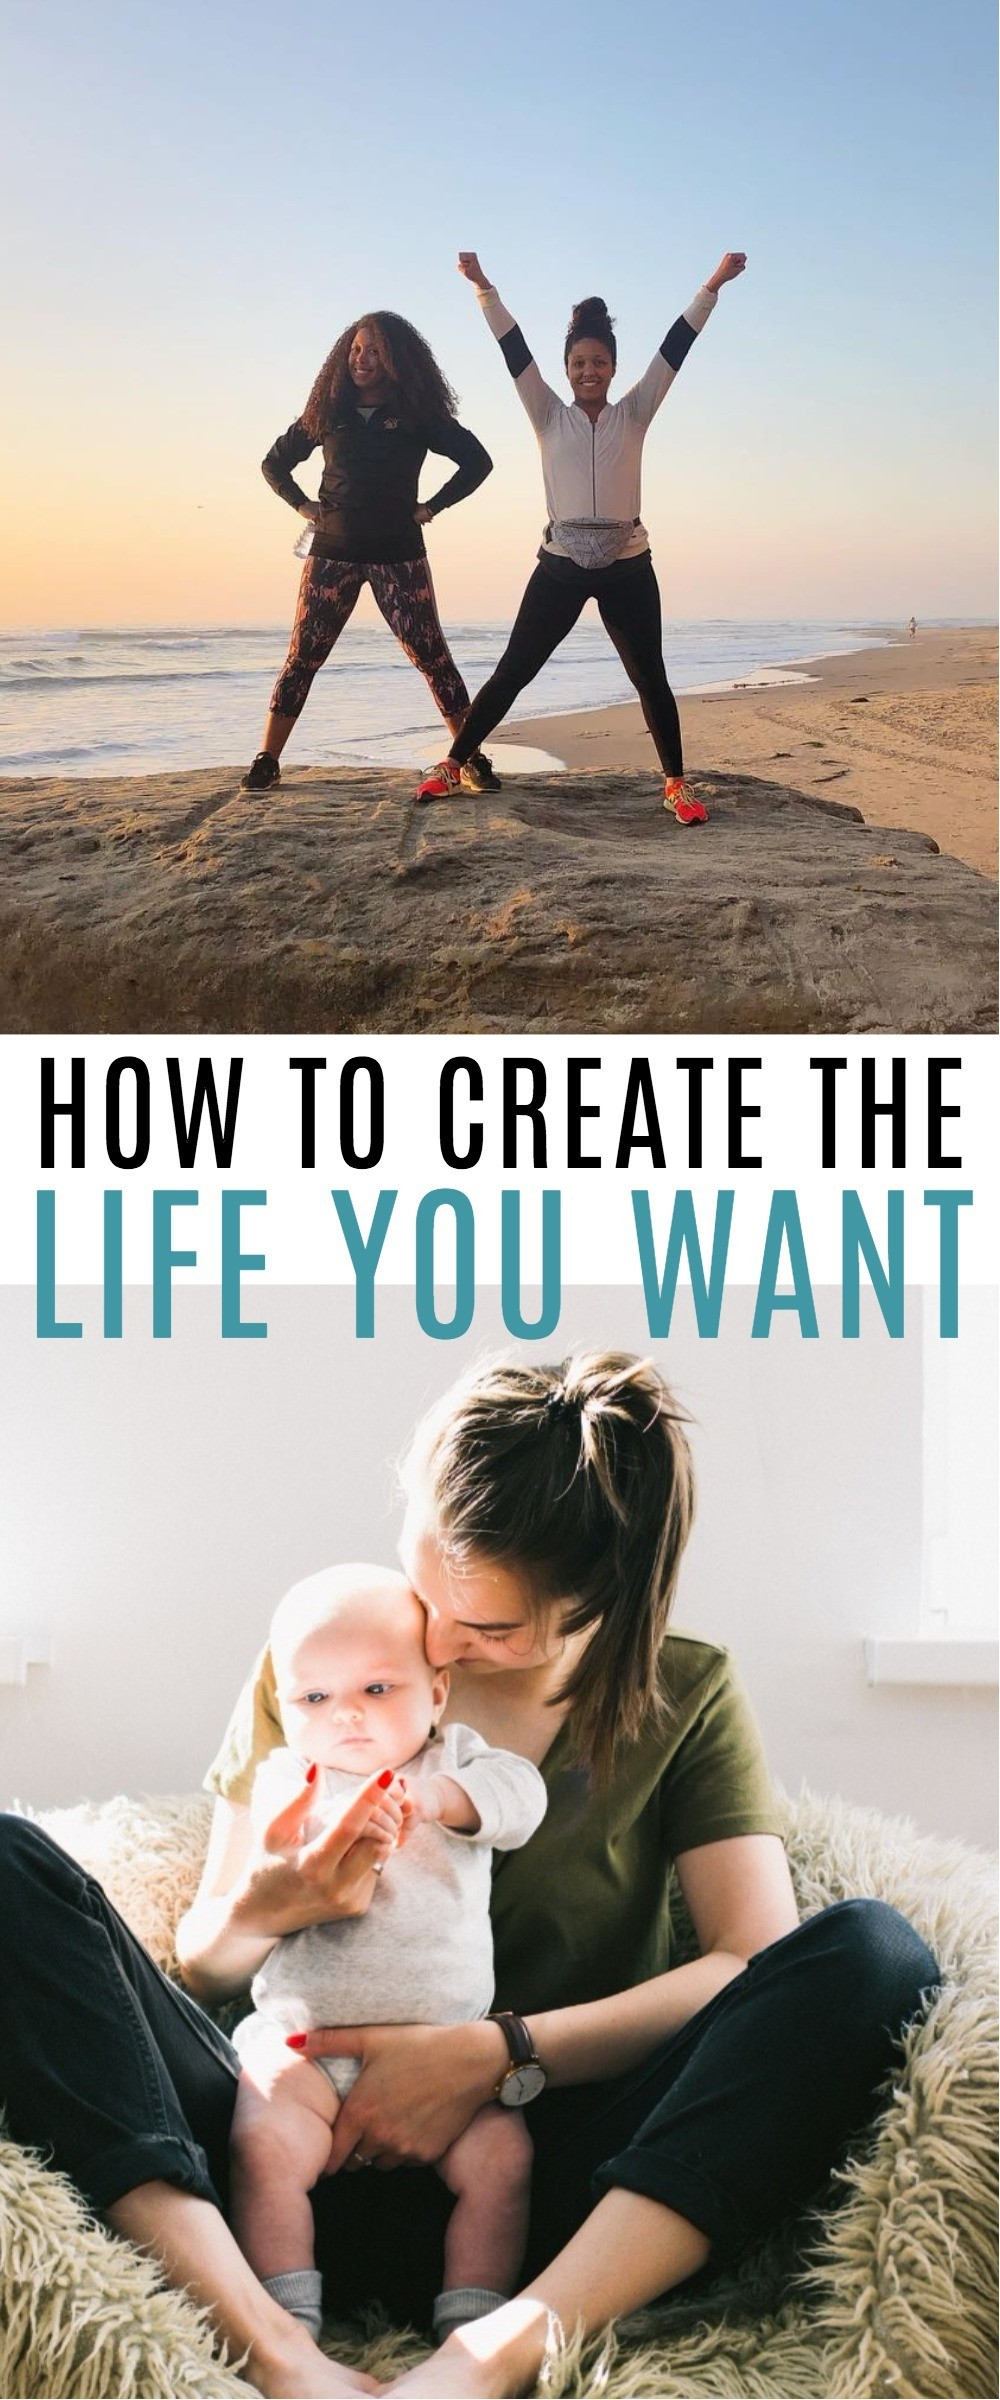 Time To Kick Start The New Year - Heres How To Get What You Want Out Of Life | create the life you want to live | creating the life you want | how to get what you want in life | How to get what you want out of life | getting what you want out of life | how to get the most out of life | what do you really want out of life | what do you want out of life | how to be successful in life | honeyandlime.co